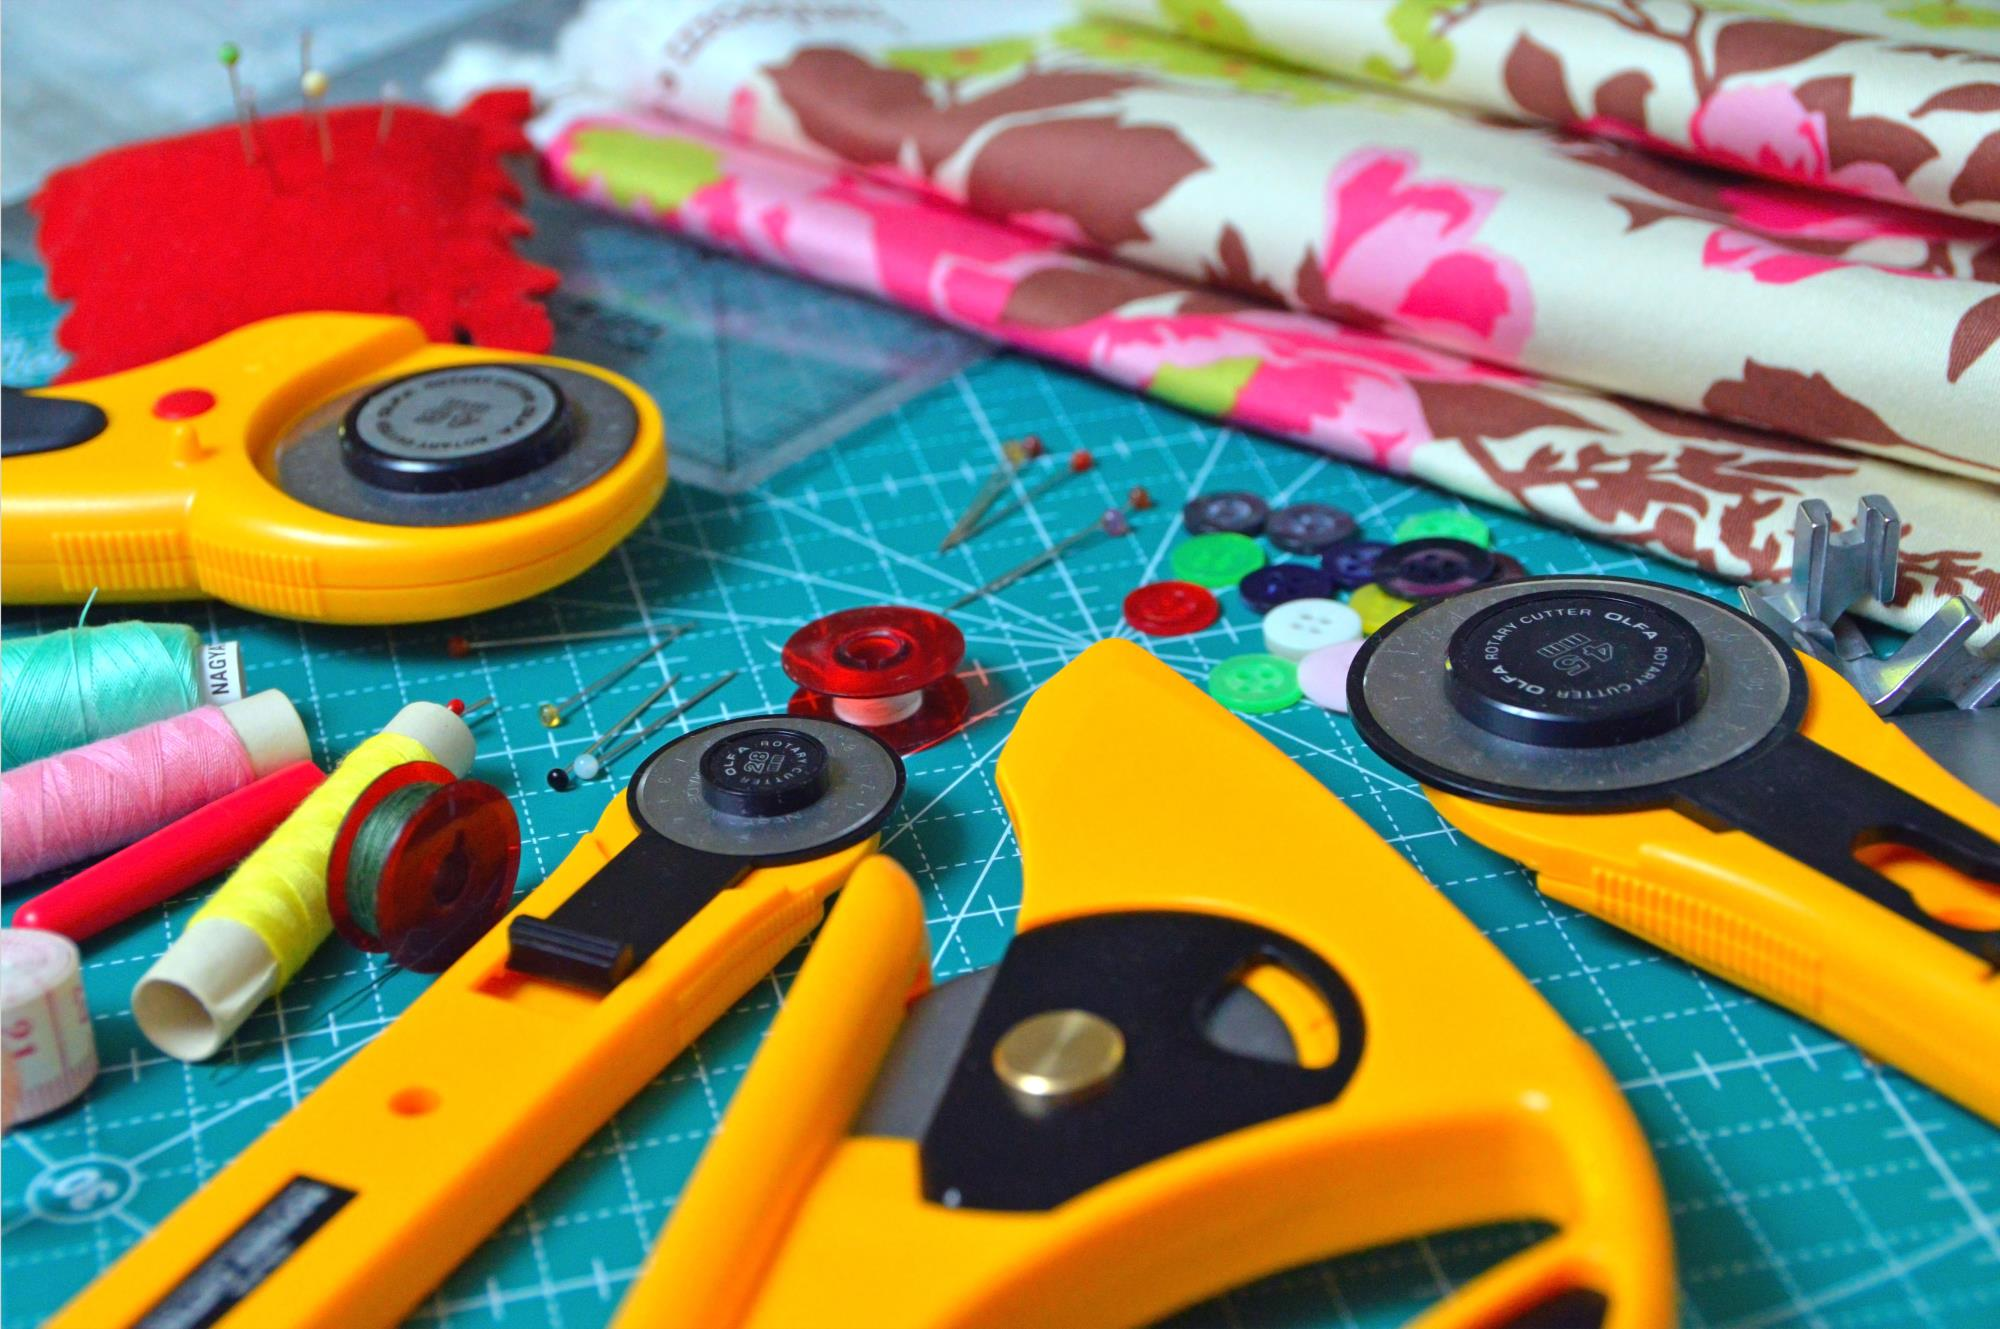 Sewing and Knitting supplies